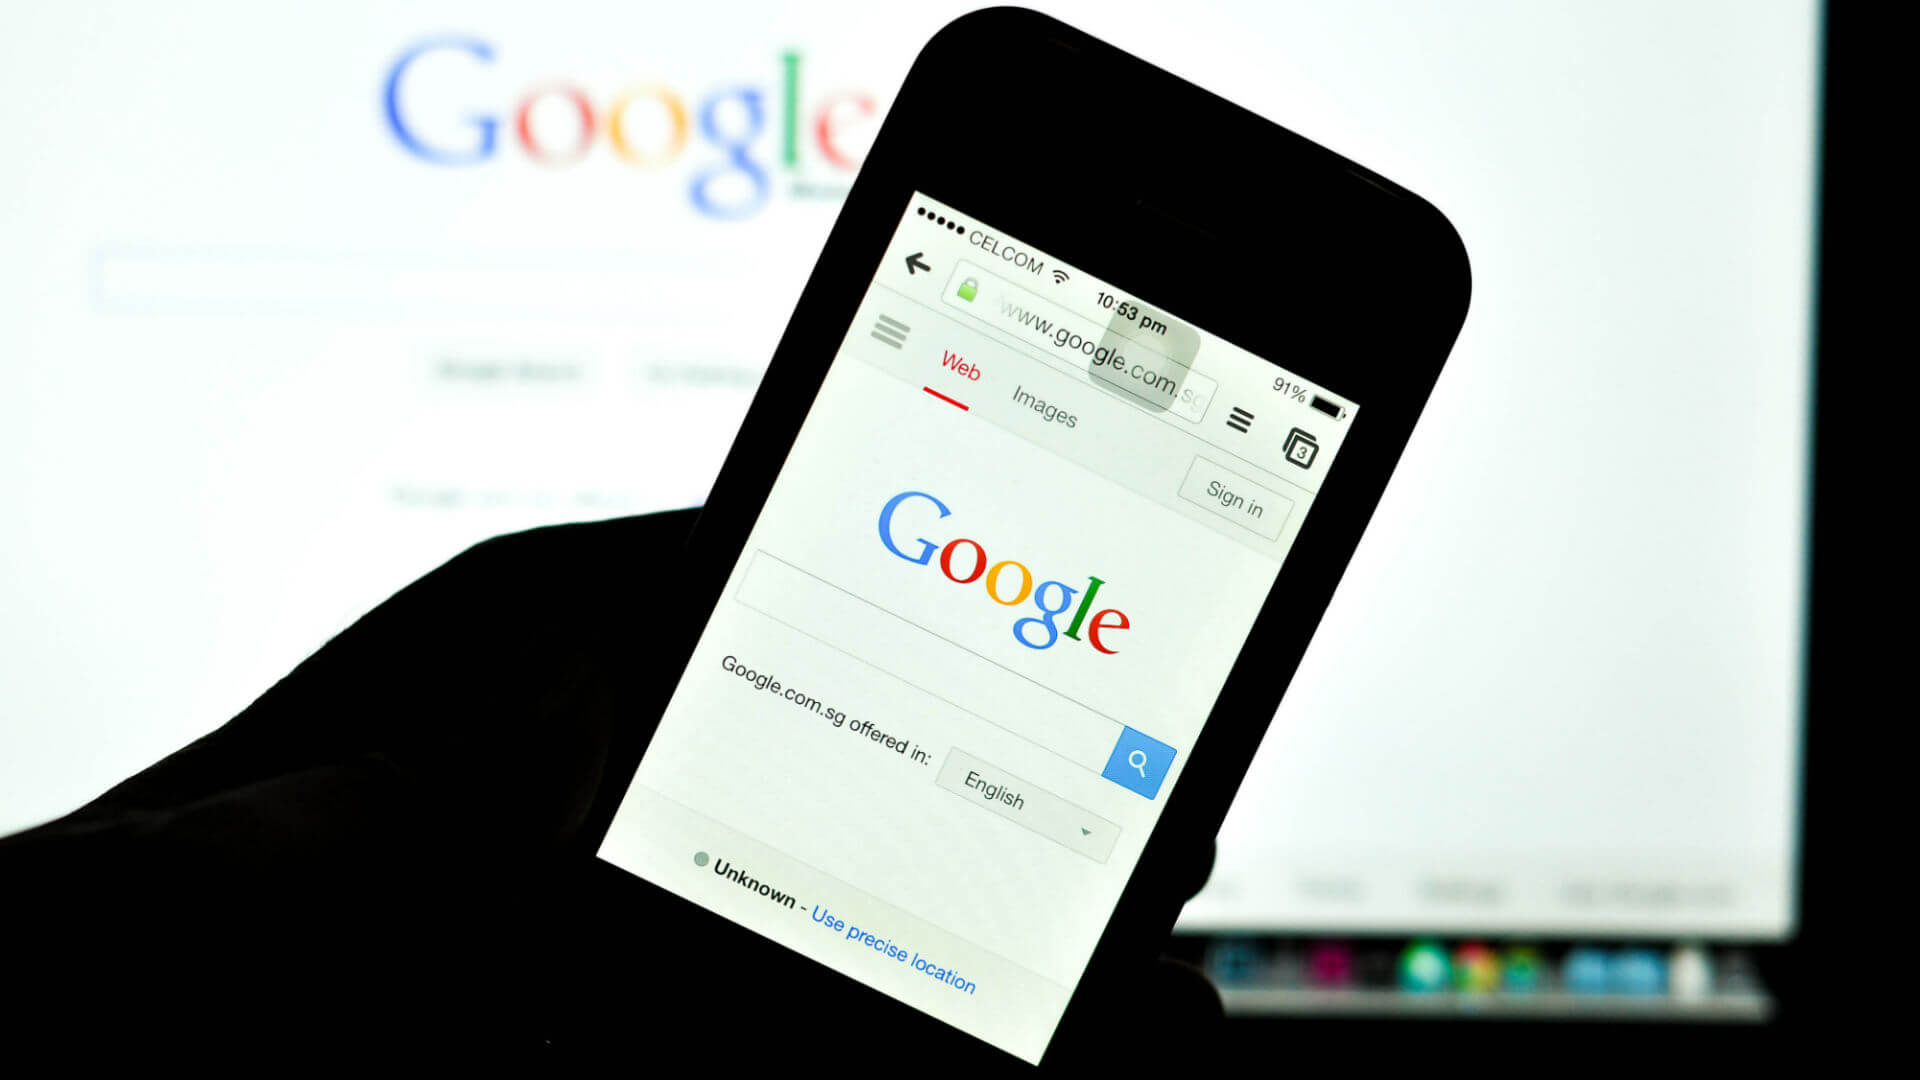 Google's Latest Search Updates Brings More Content To